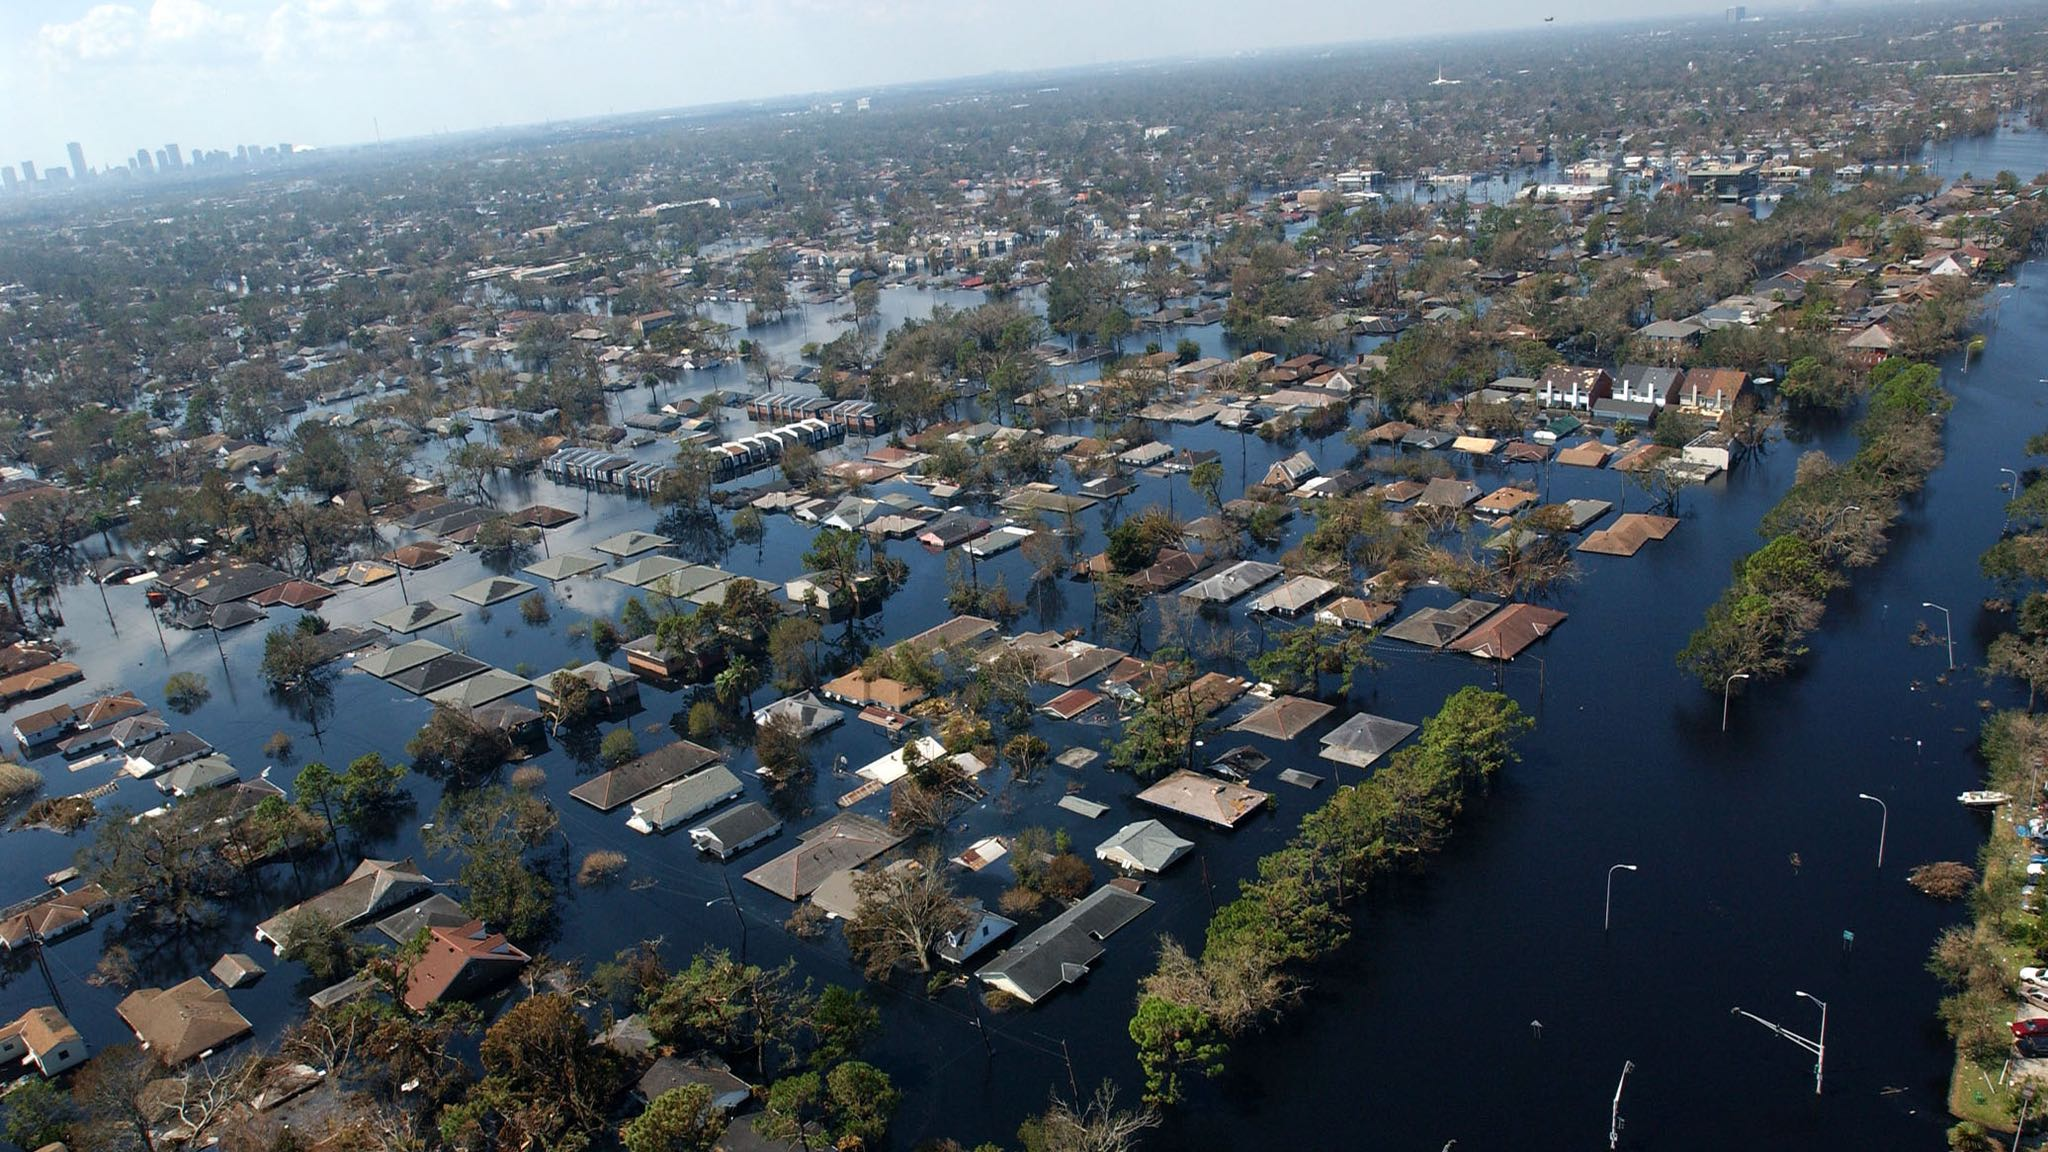 New Orleans, LA-September 8, 2005- Neighborhoods and roadways throughout the area remain flooded as a result of Hurricane Katrina. Jocelyn Augustino/FEMA